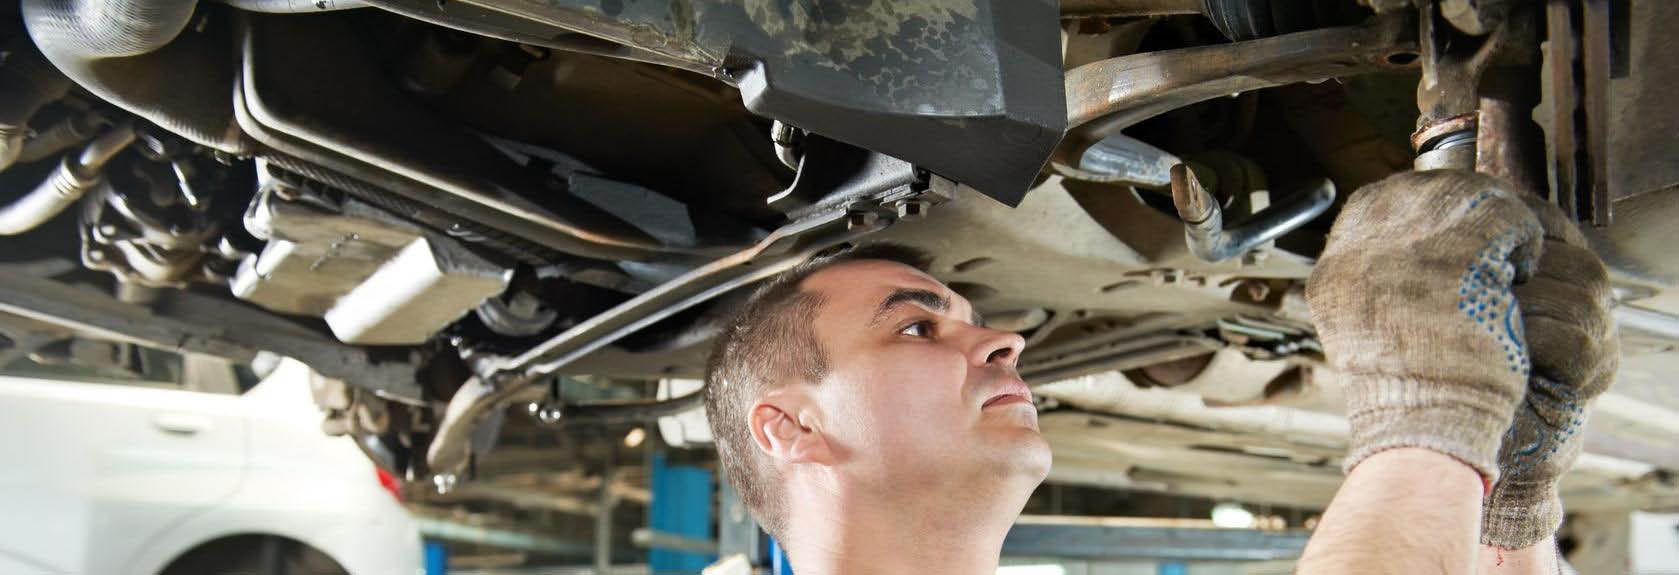 Engine Oil Services  Inspection Services  Brake Fluid Service